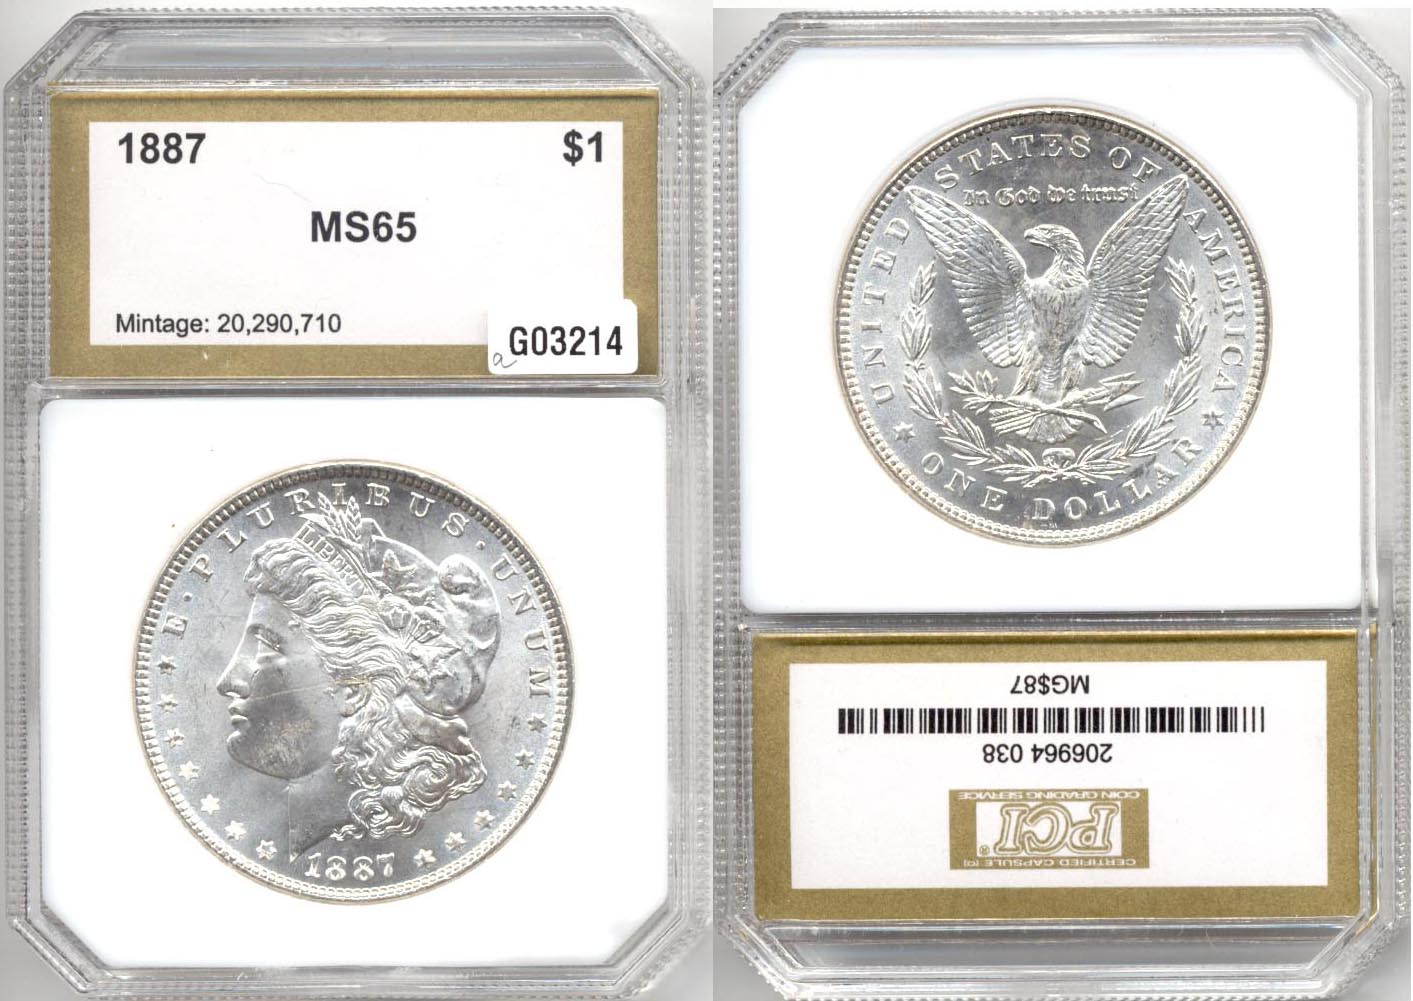 1887 Morgan Silver Dollar PCI MS-65 a